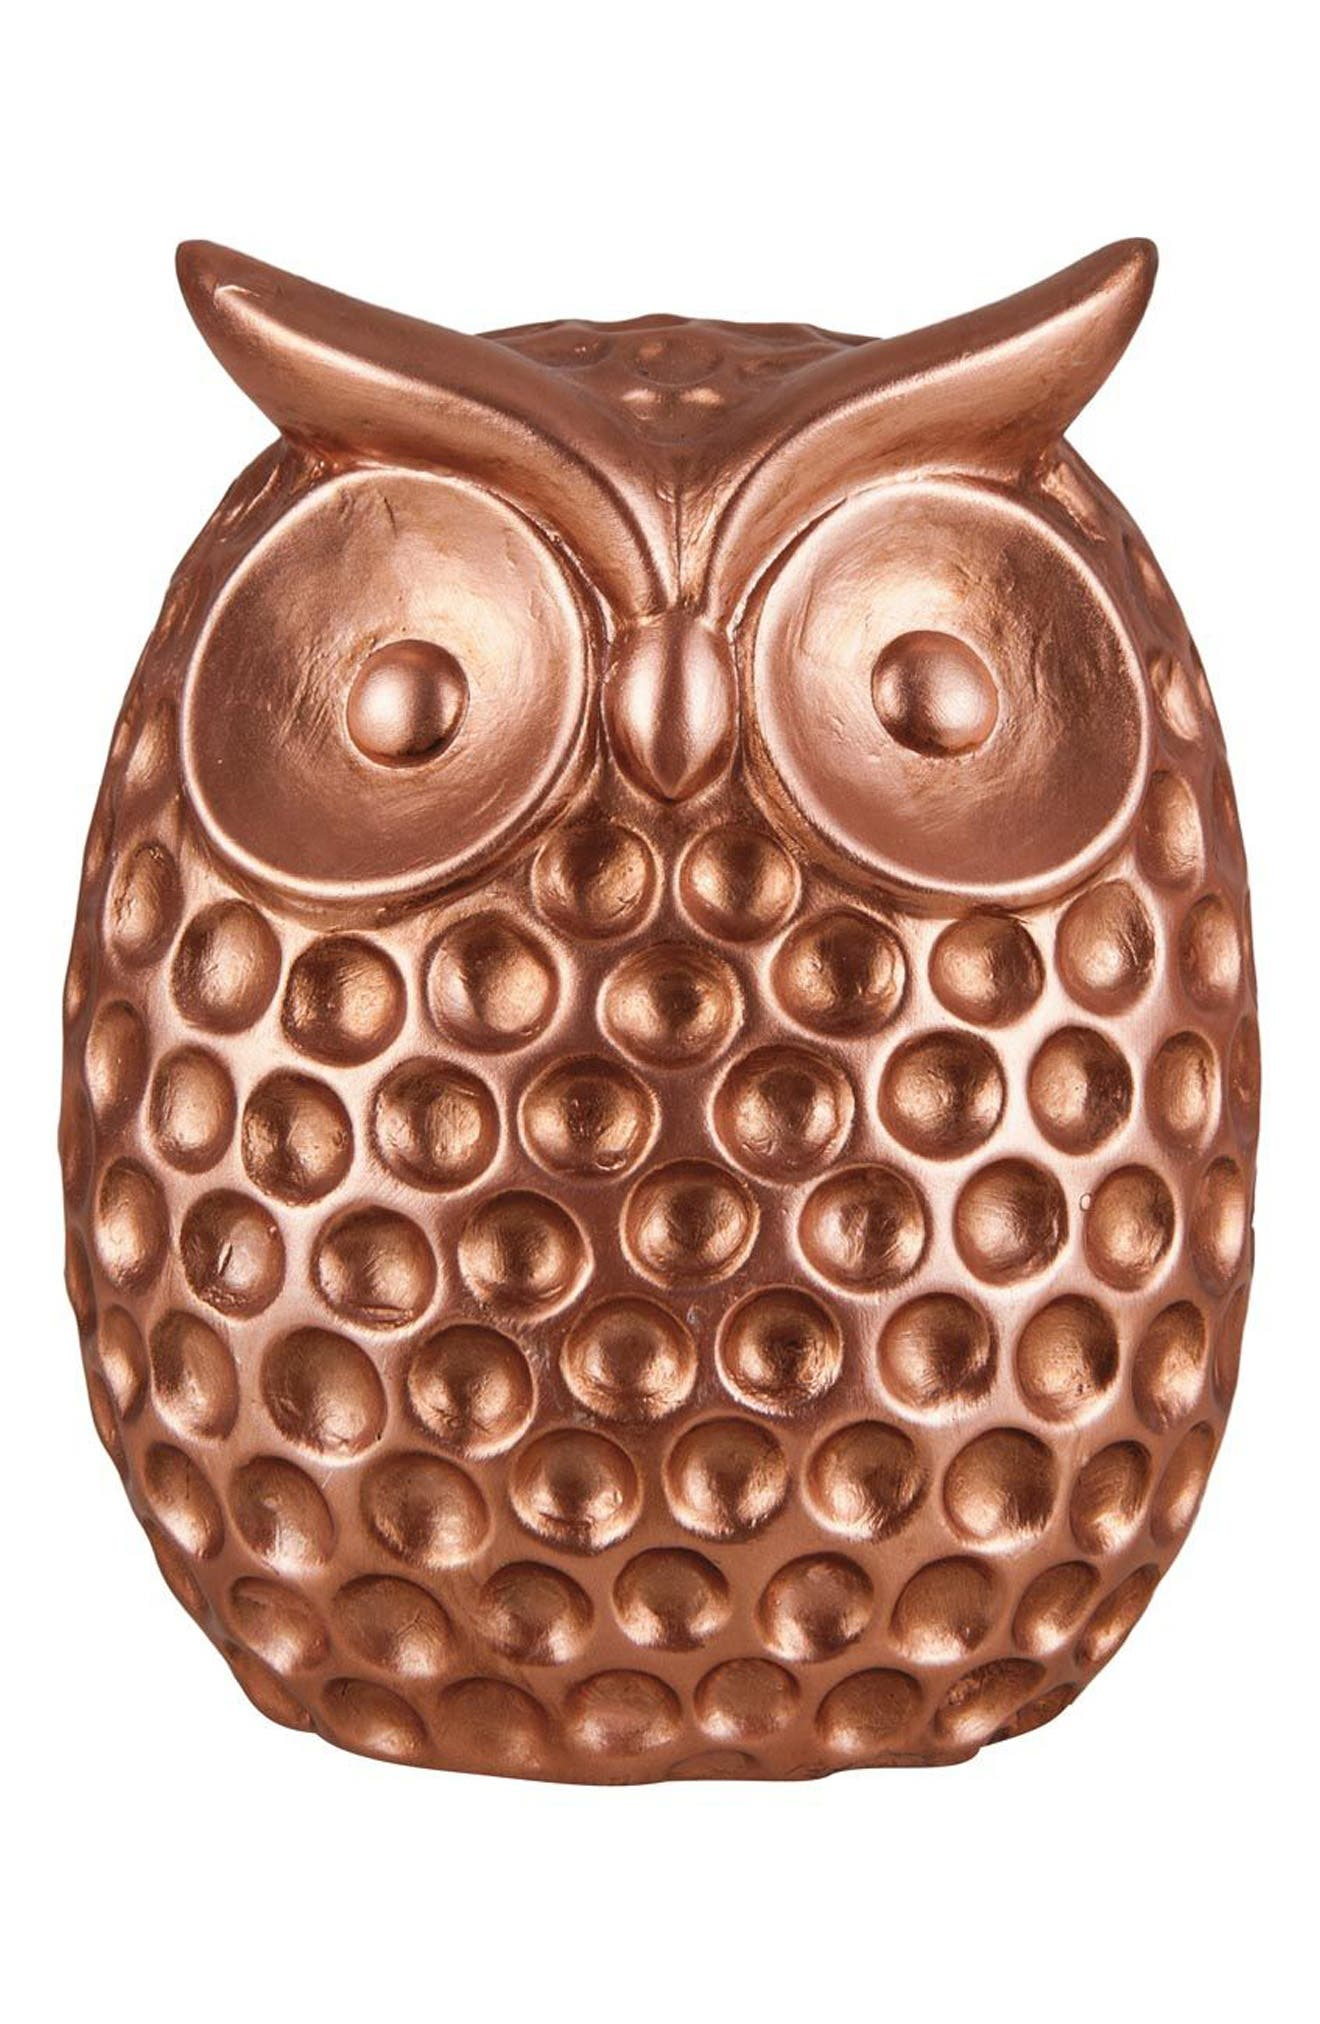 Main Image - Foreside Ceramic Owl Statue